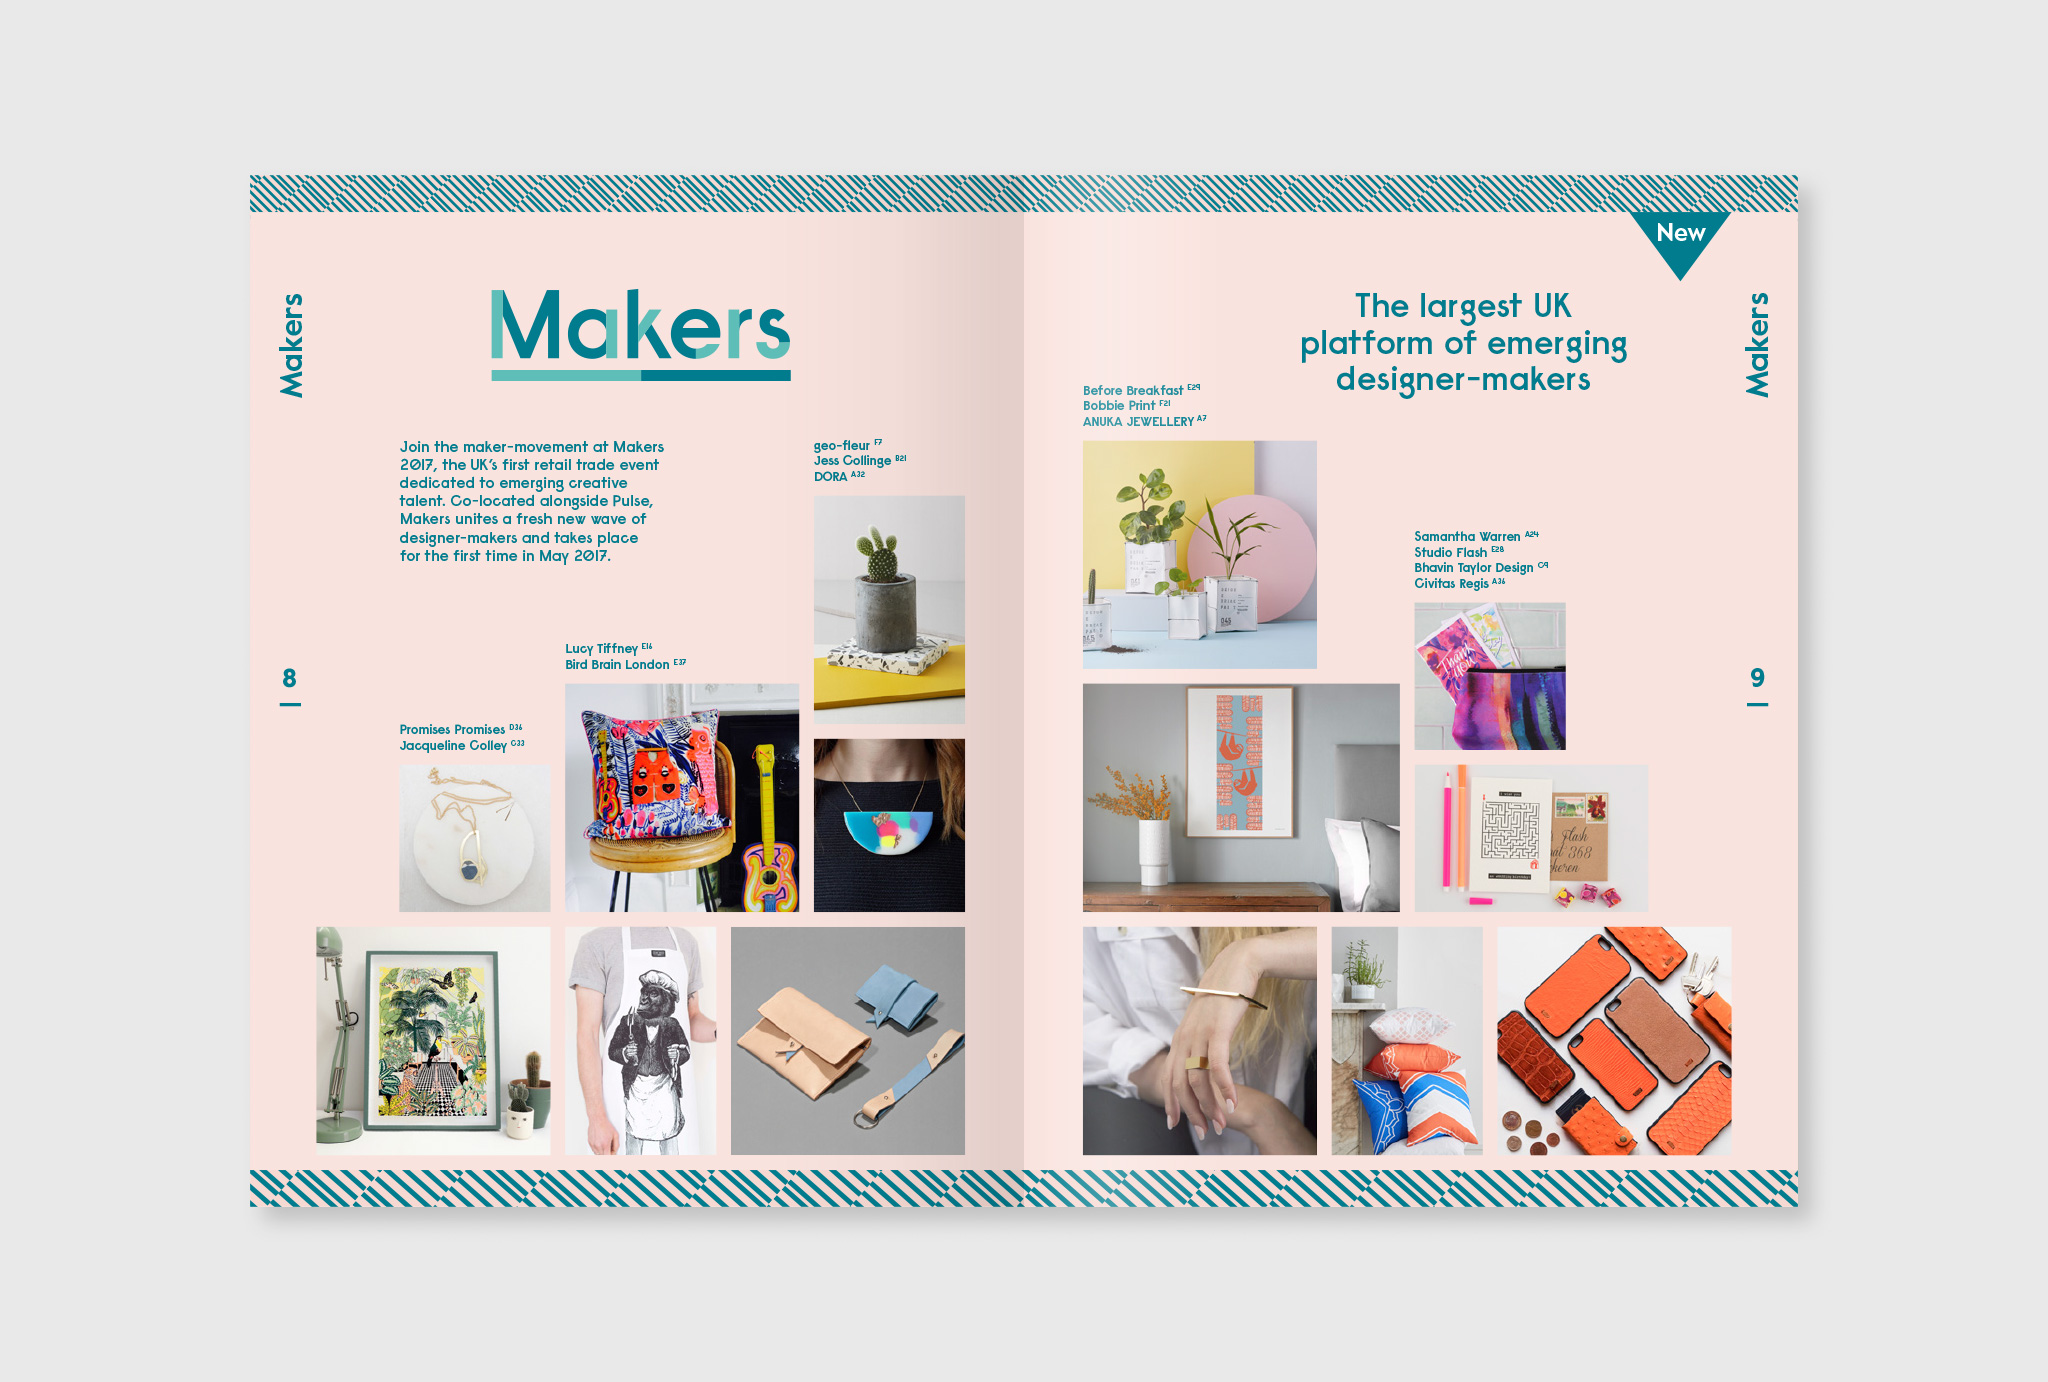 brochure layout, 'Makers' logo as headline with some text and images underneath on a rose background